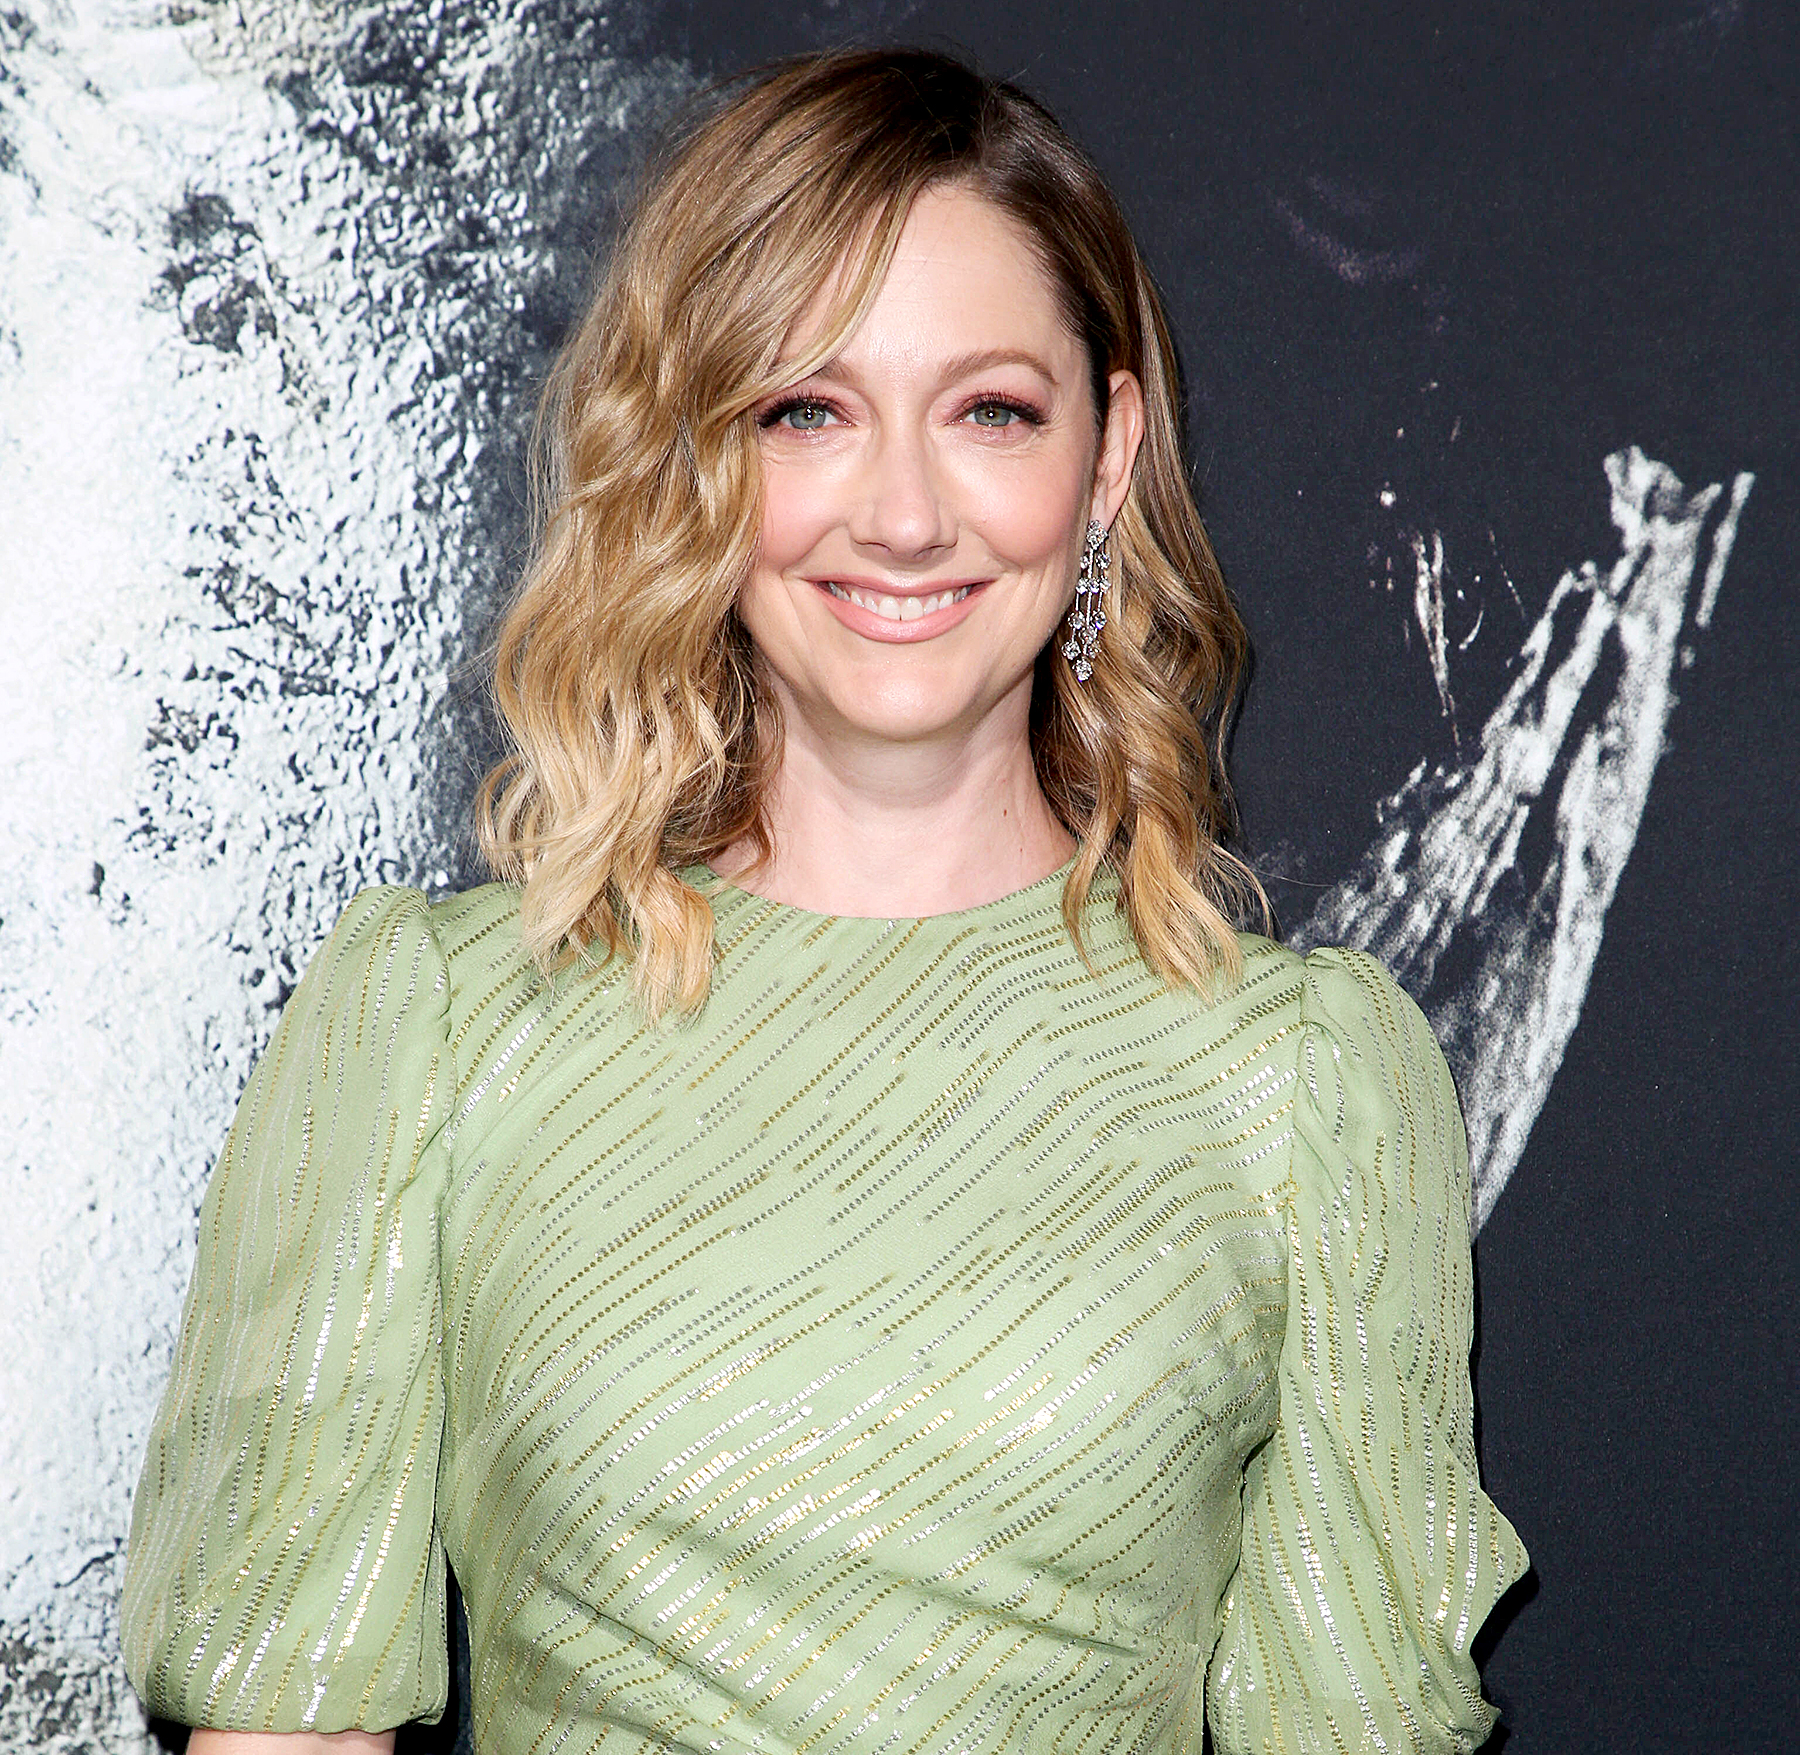 Think, that judy greer sorry, that